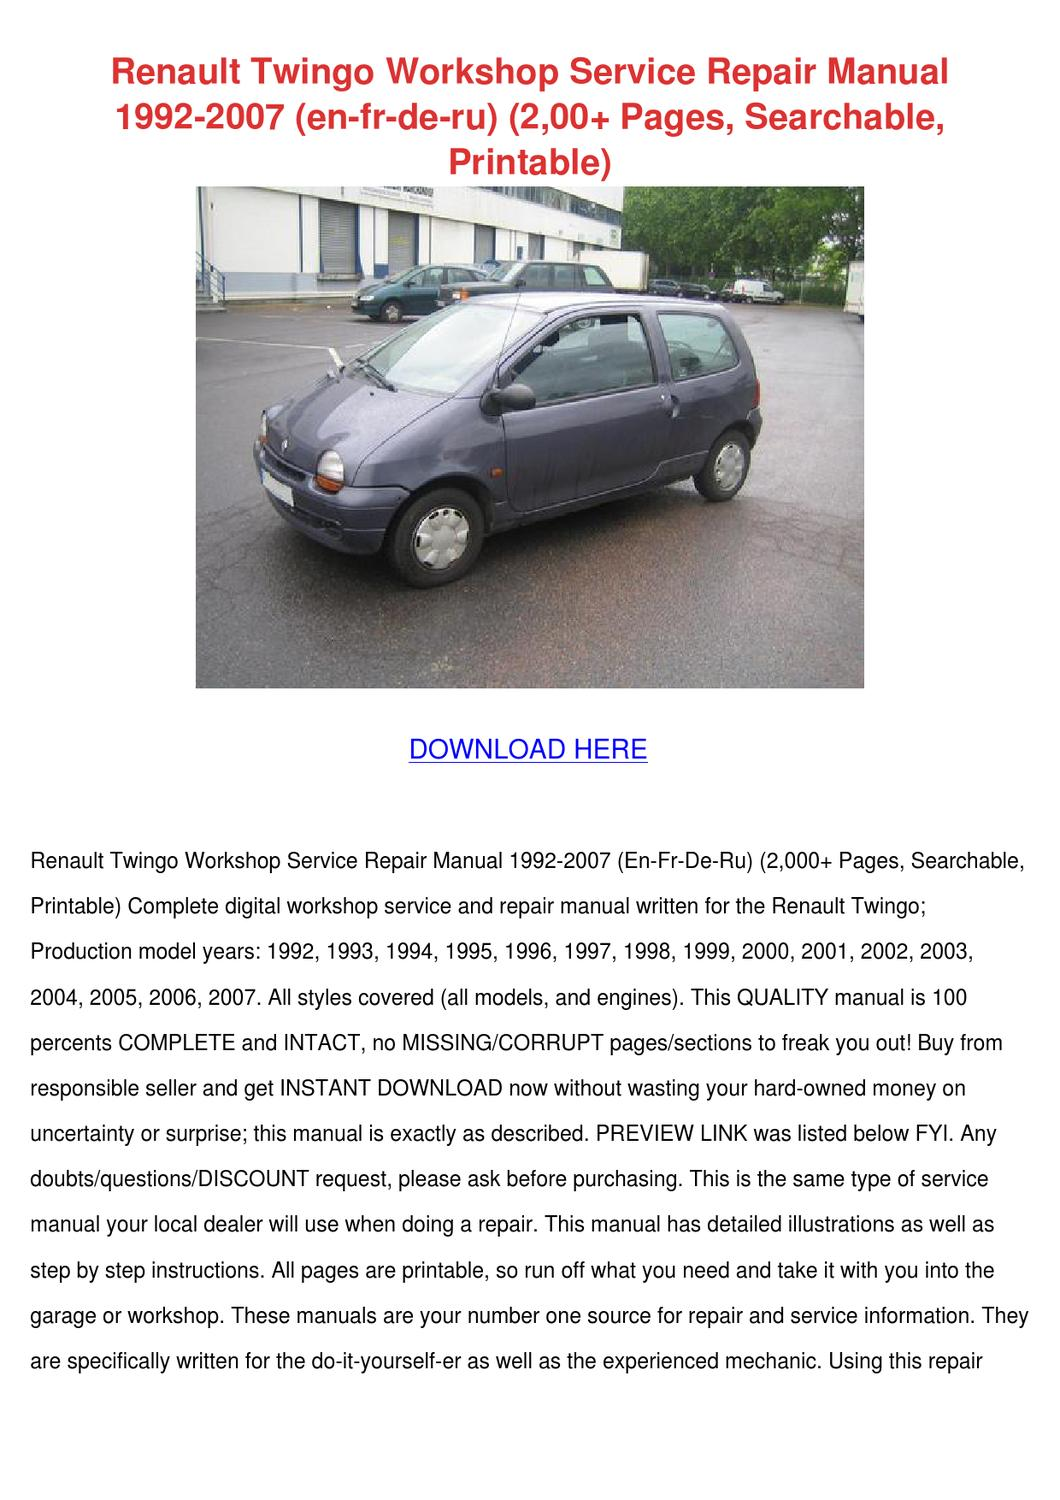 renault twingo workshop service repair manual by lakeishajeffers issuu rh issuu com Renault Twingo Interior 2016 Renault Twingo